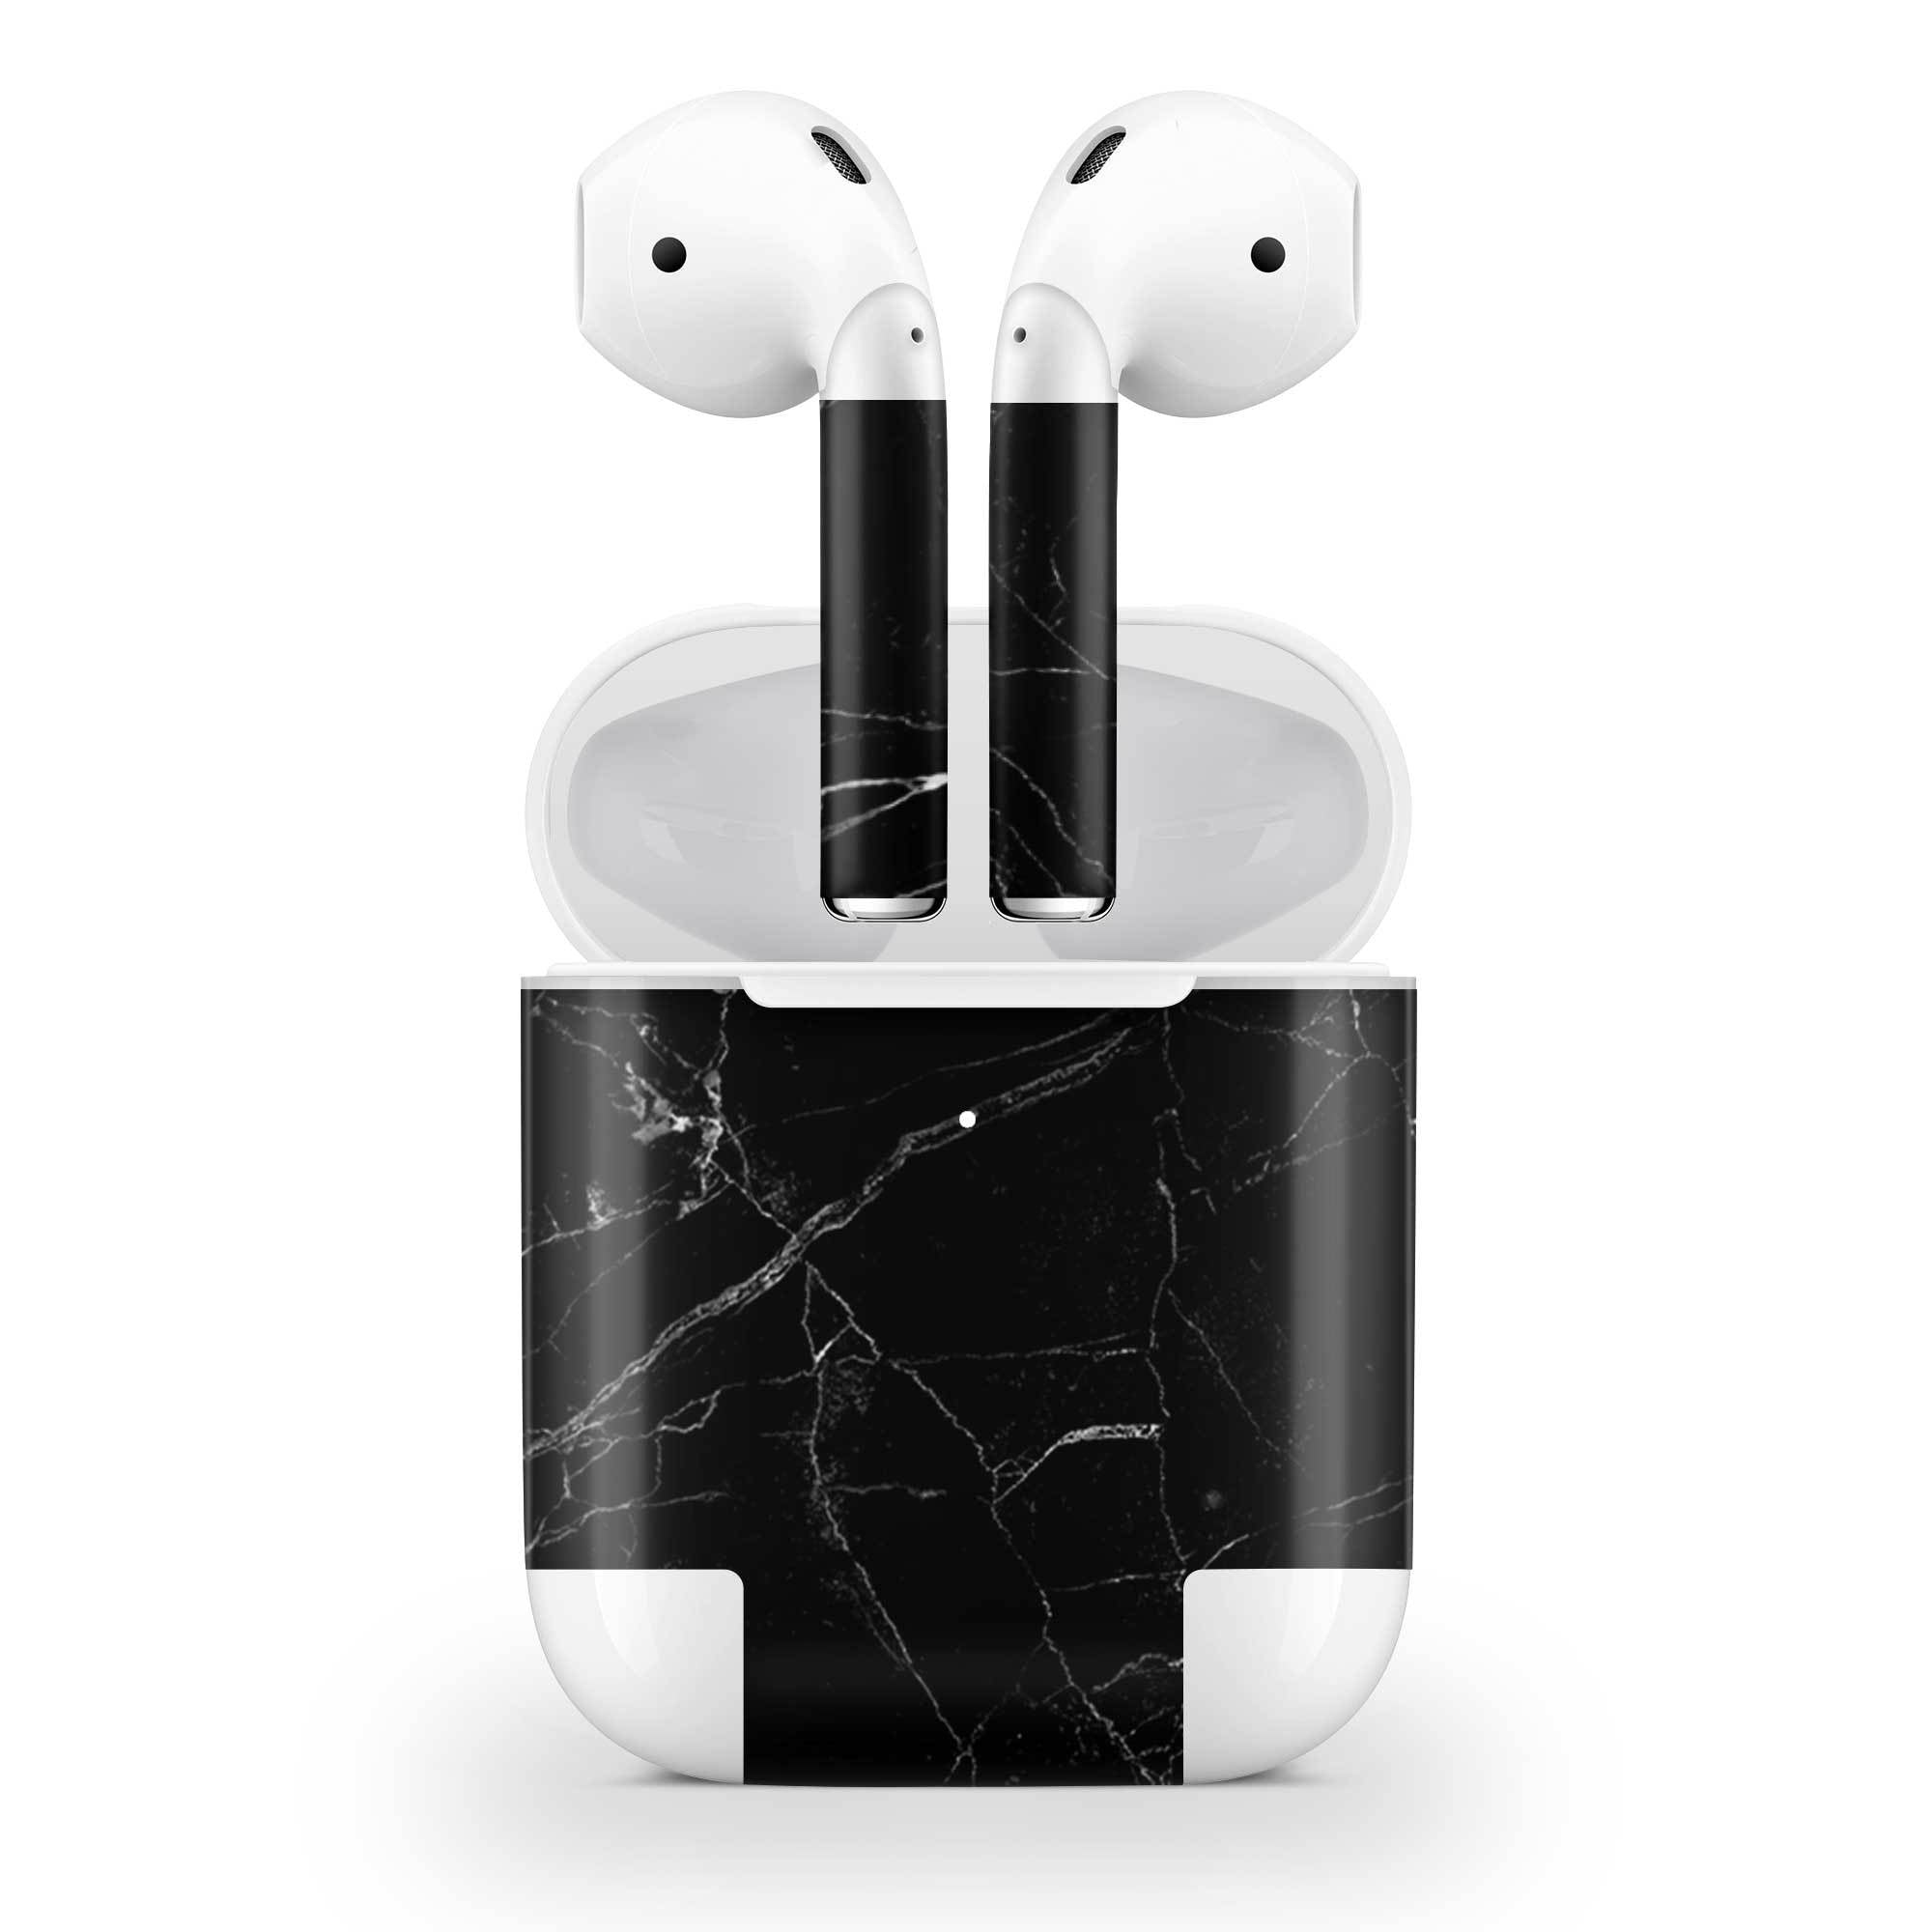 Black Marble Skin AirPods Wireless Charging Case